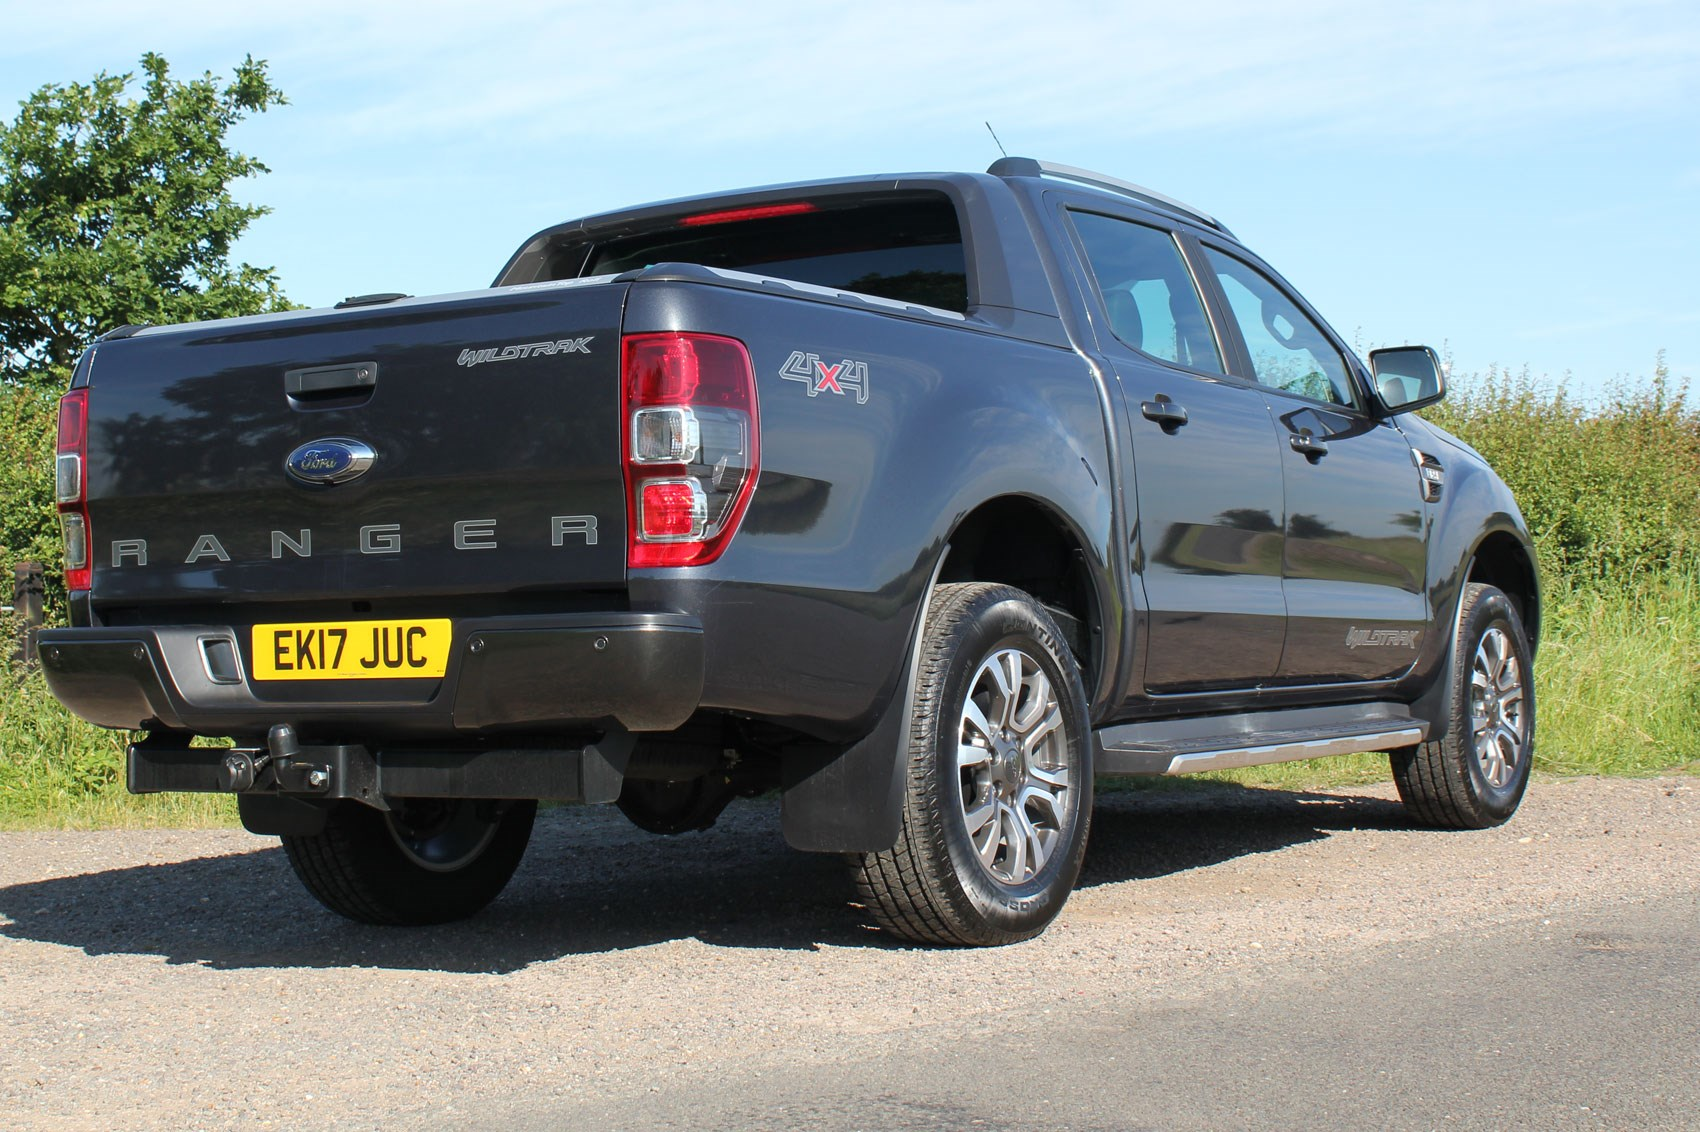 Ford Ranger Wildtrak Euro 6 review - dark grey, rear view